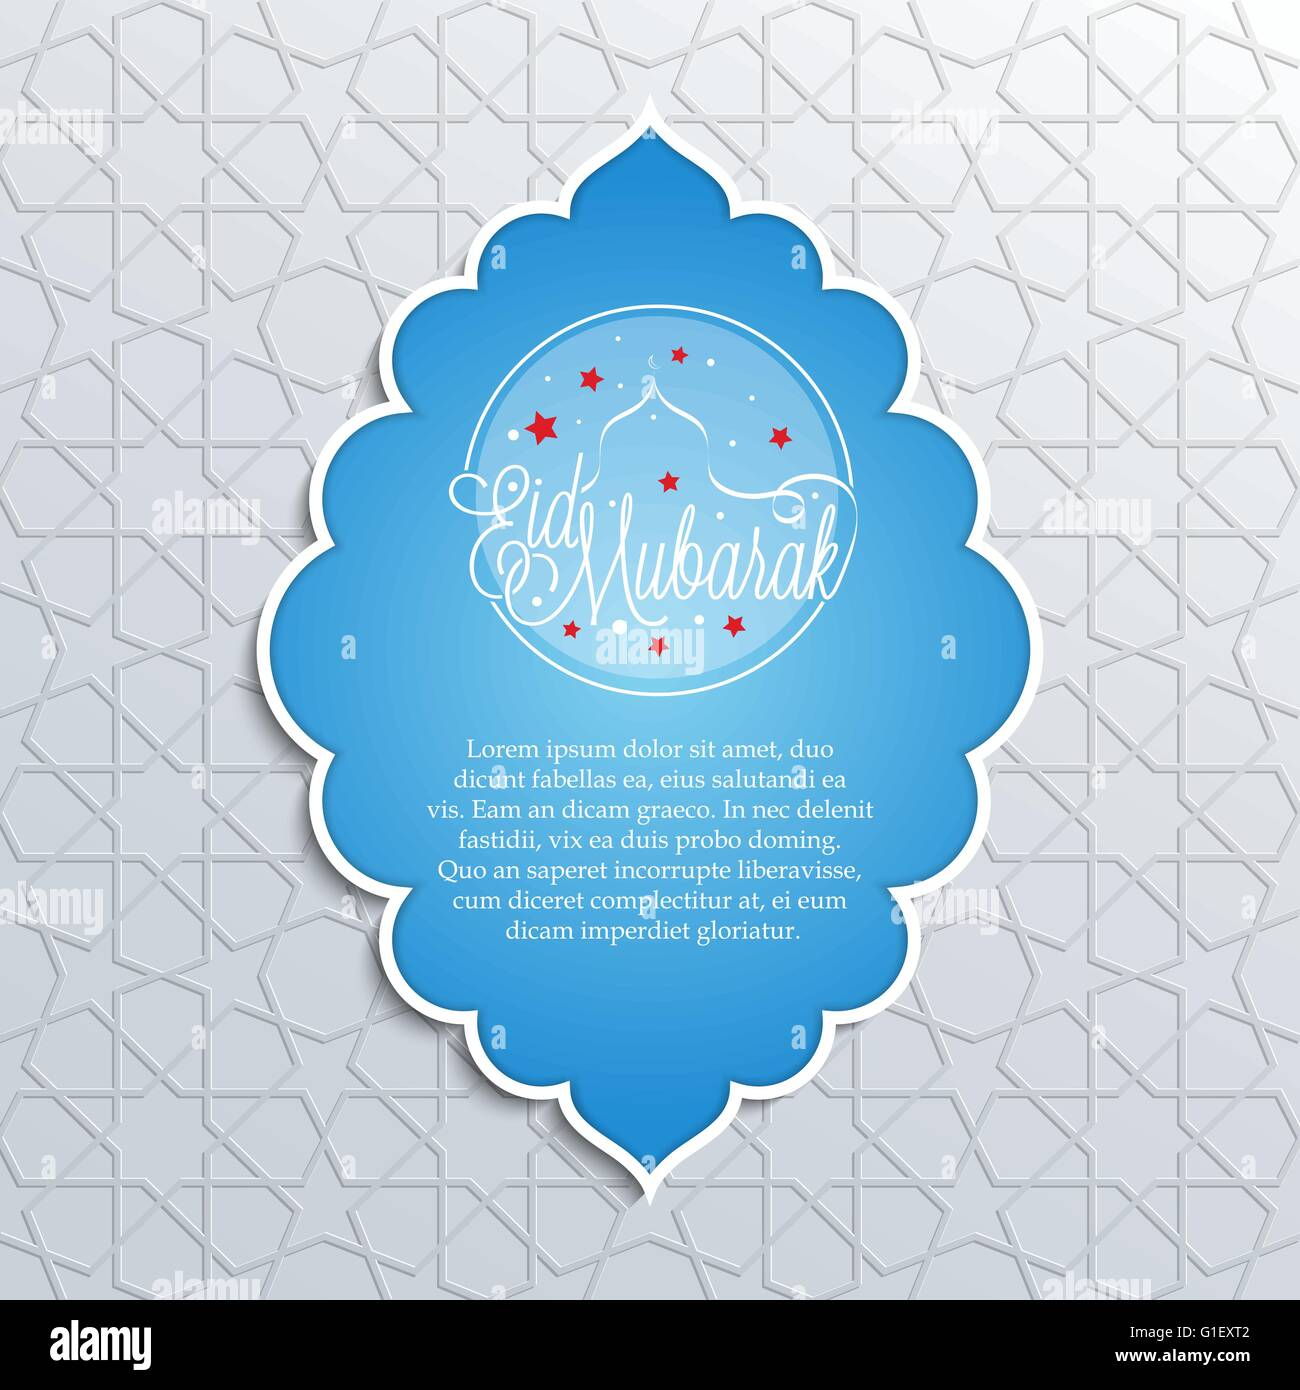 Vector illustration of eid mubarak greeting card design on islamic vector illustration of eid mubarak greeting card design on islamic decorative background for holy month ramadan kristyandbryce Image collections